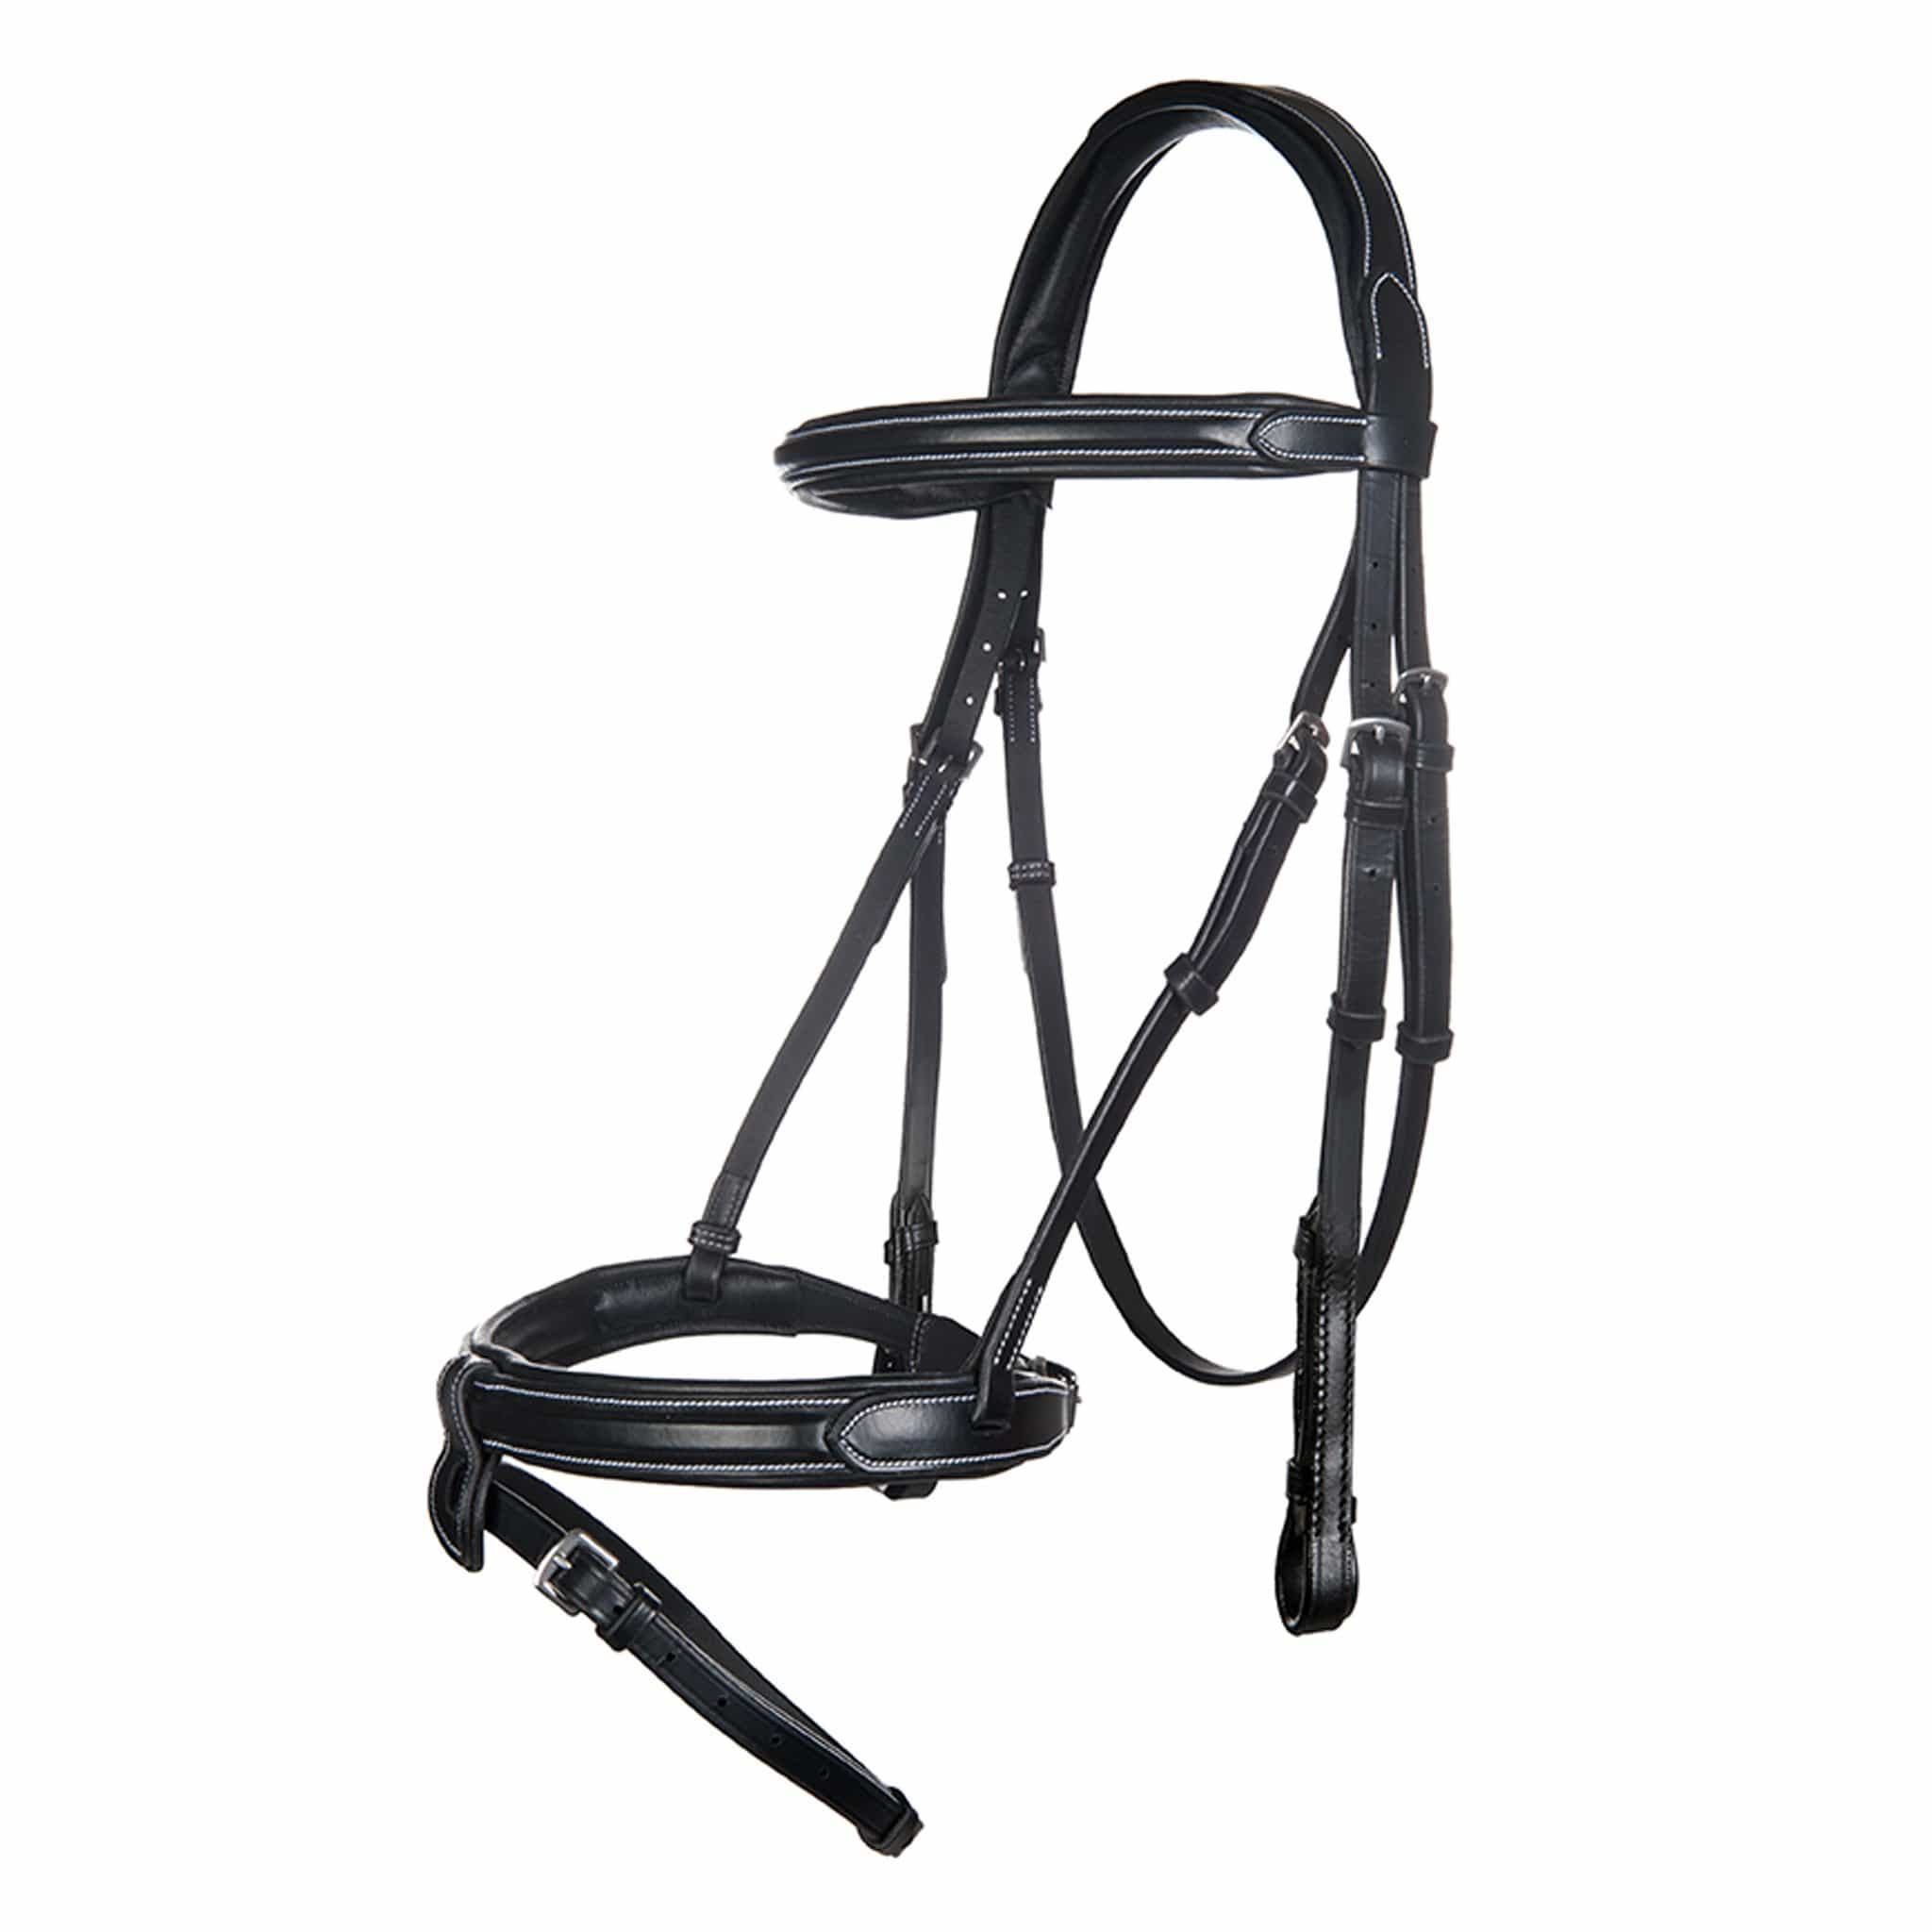 HKM Charlotte II Bridle With Gel Padding 11173 Black Full Bridle